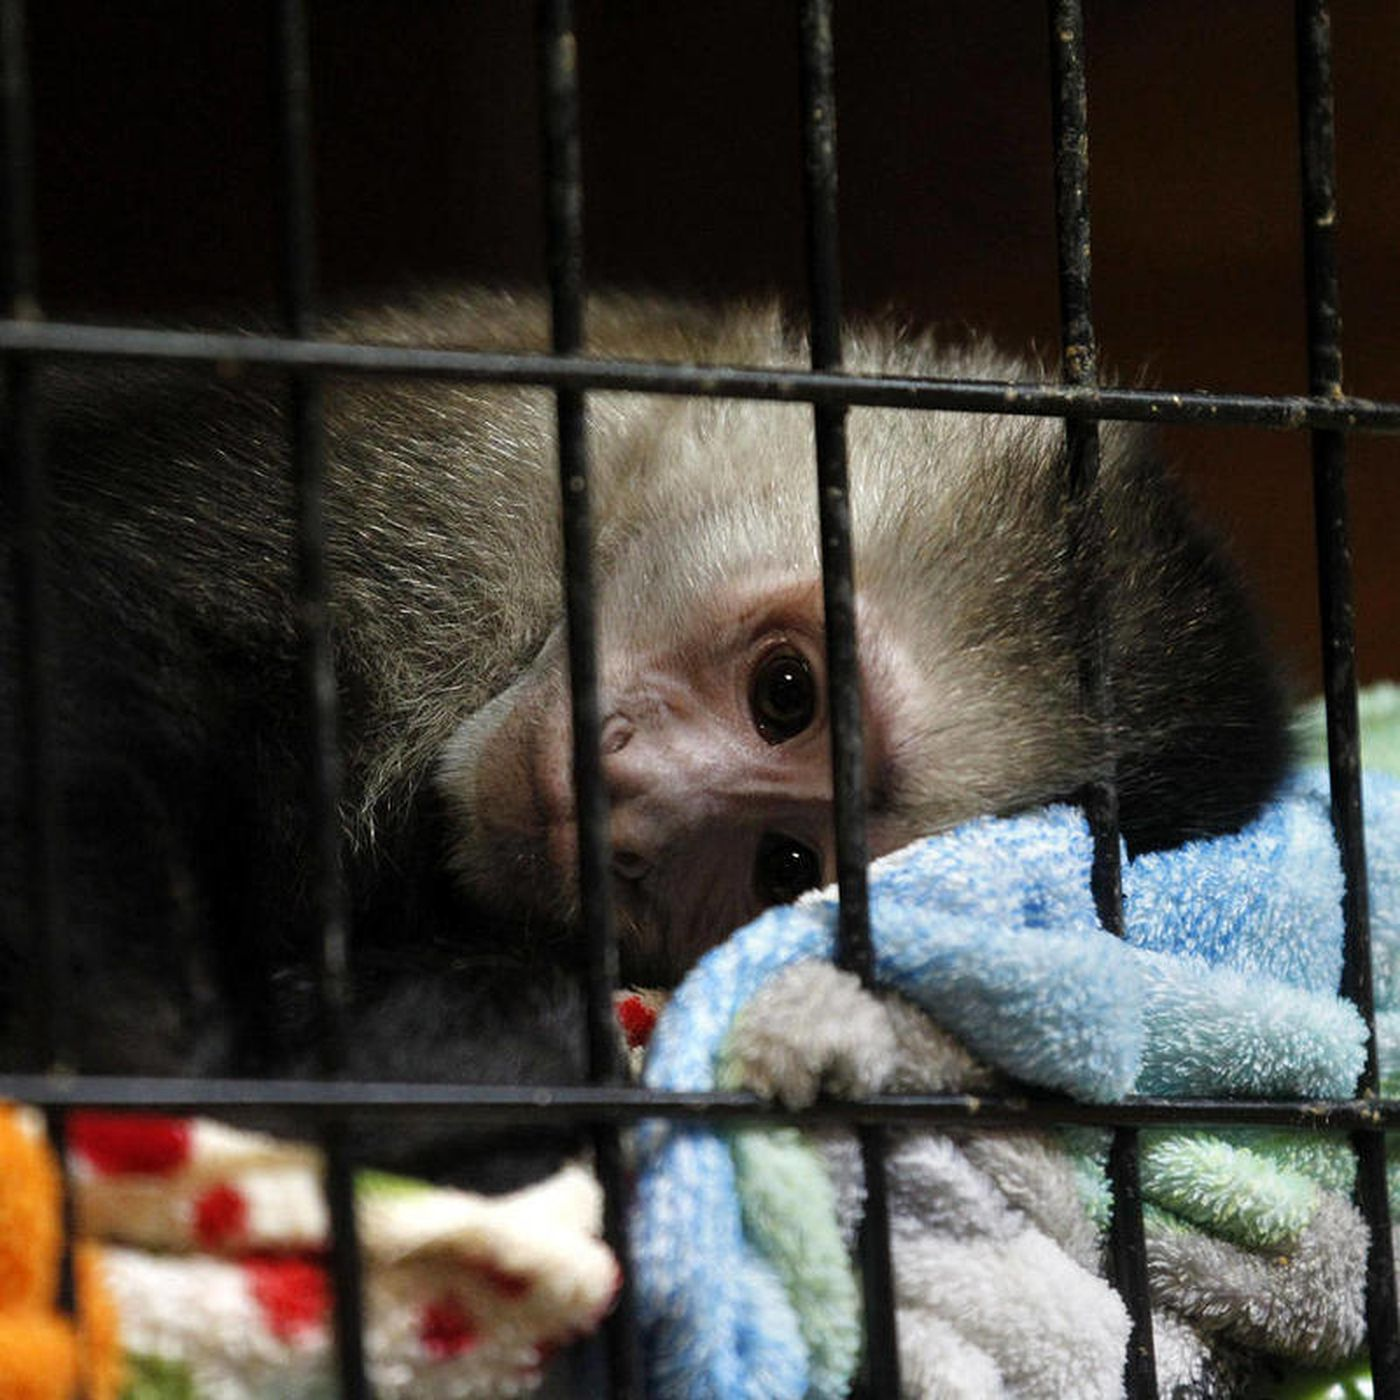 AP Enterprise: Monkey owners flee La. crackdown - Deseret News